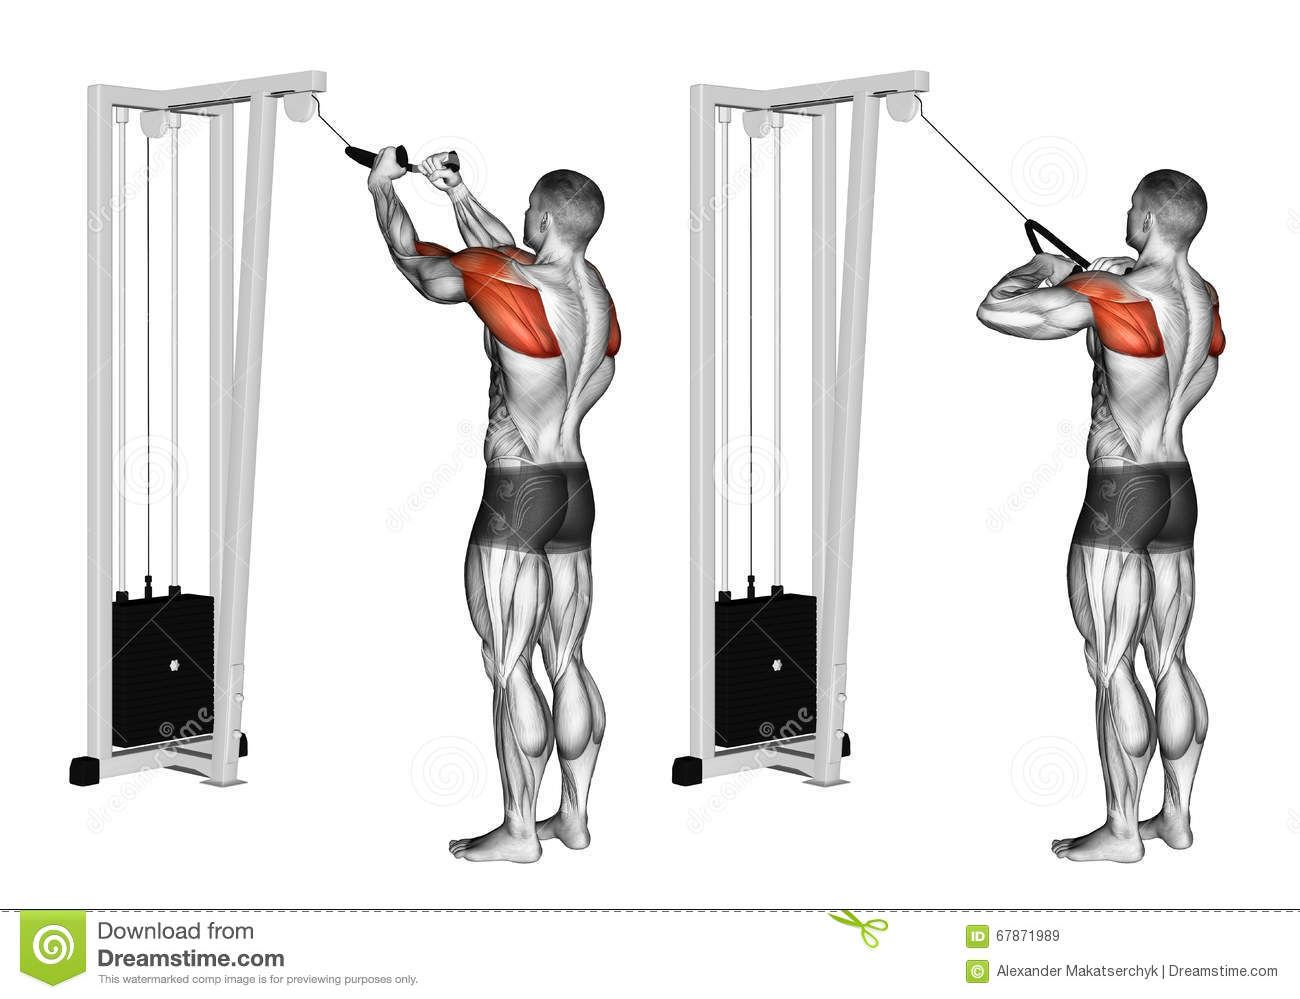 Exercising Cable Rope Rear Delt Rows Download From Over